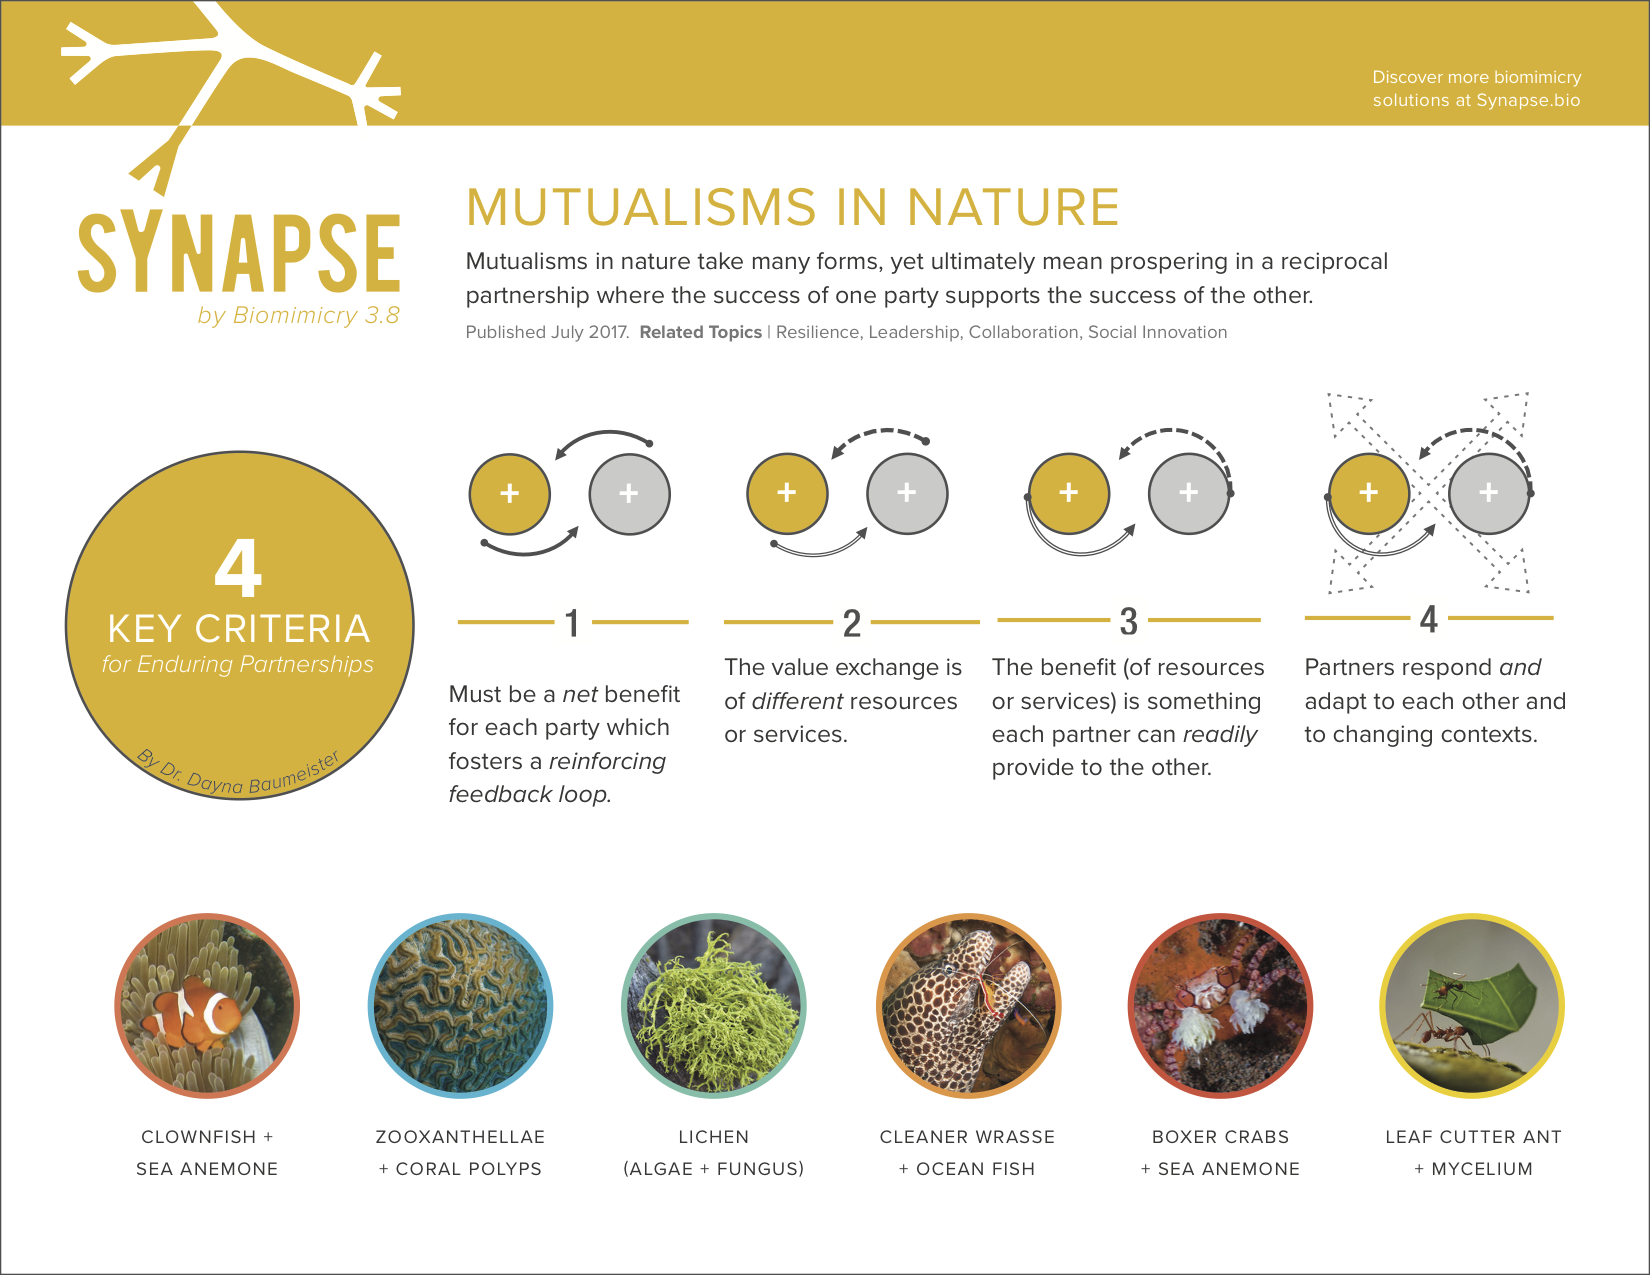 Download this shareable infographic capturing the four key criteria of mutualisms in nature!